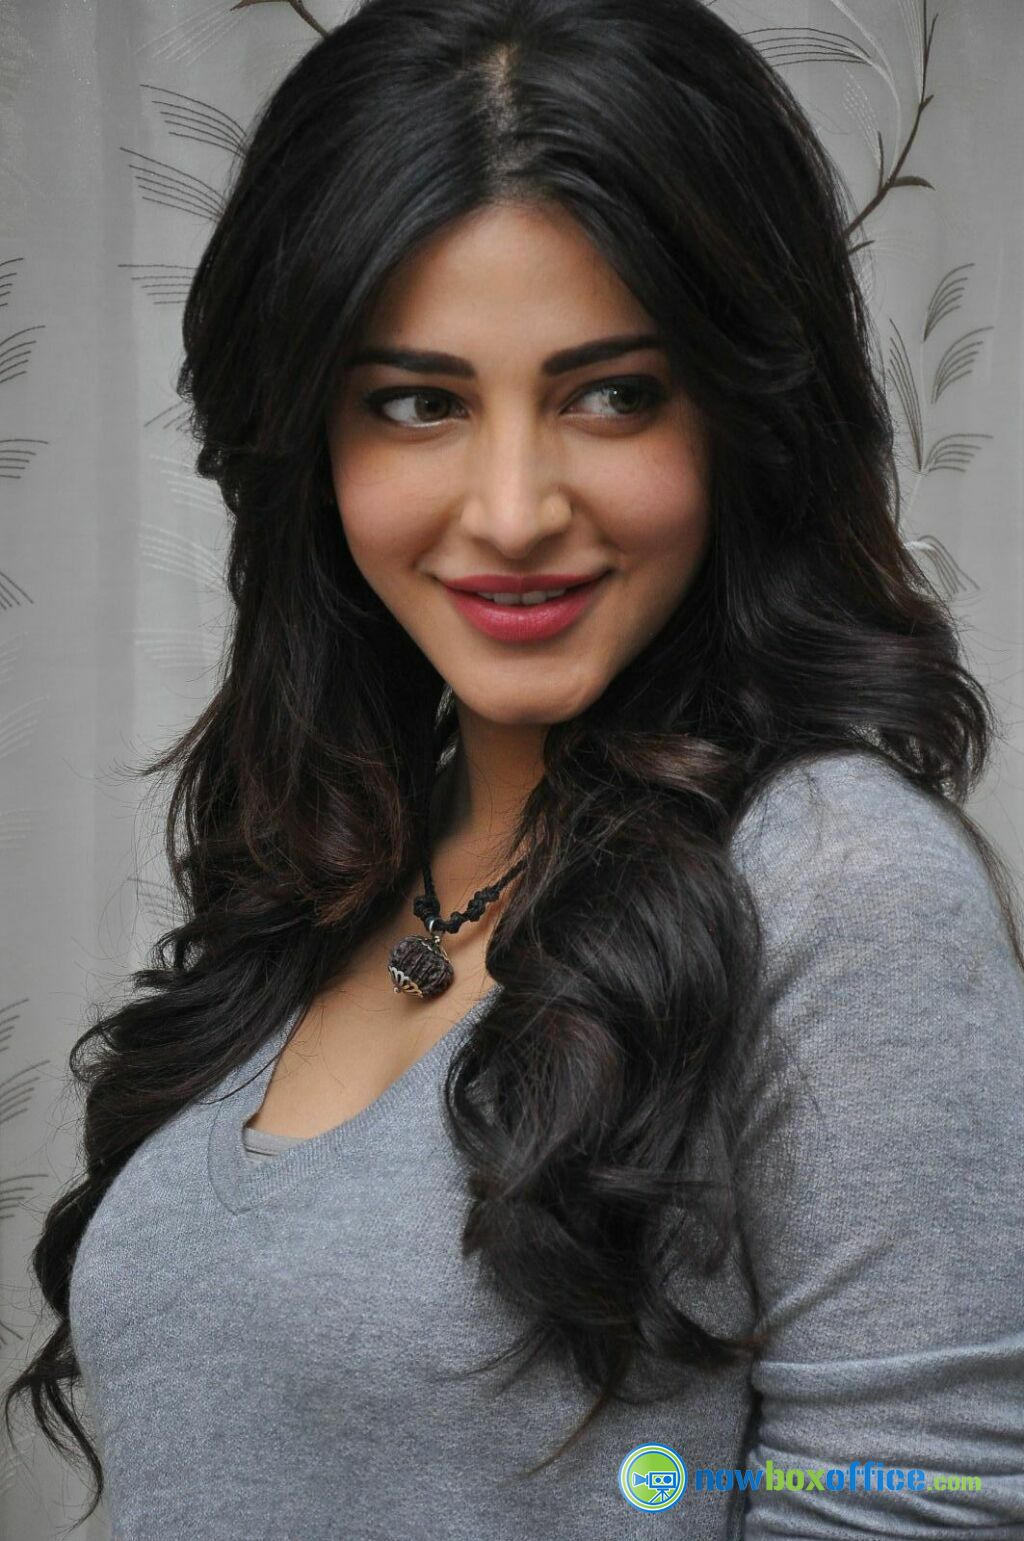 1st Name All On People Named Shruti Songs Books Gift Ideas Pics Amp More